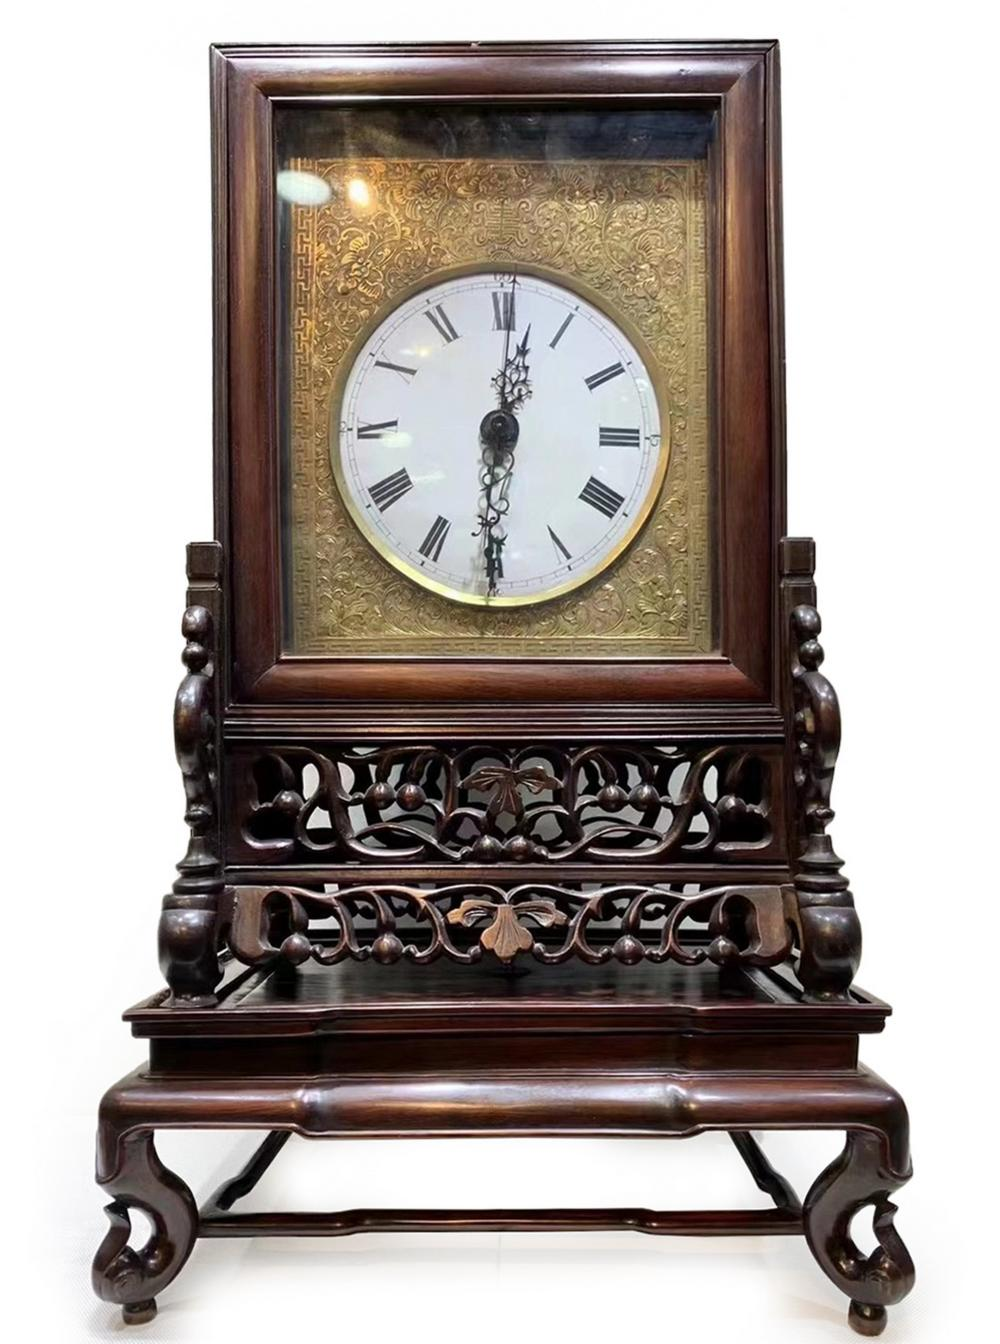 QING DYN. CARVED ROSEWOOD GILT MANTLE CLOCK